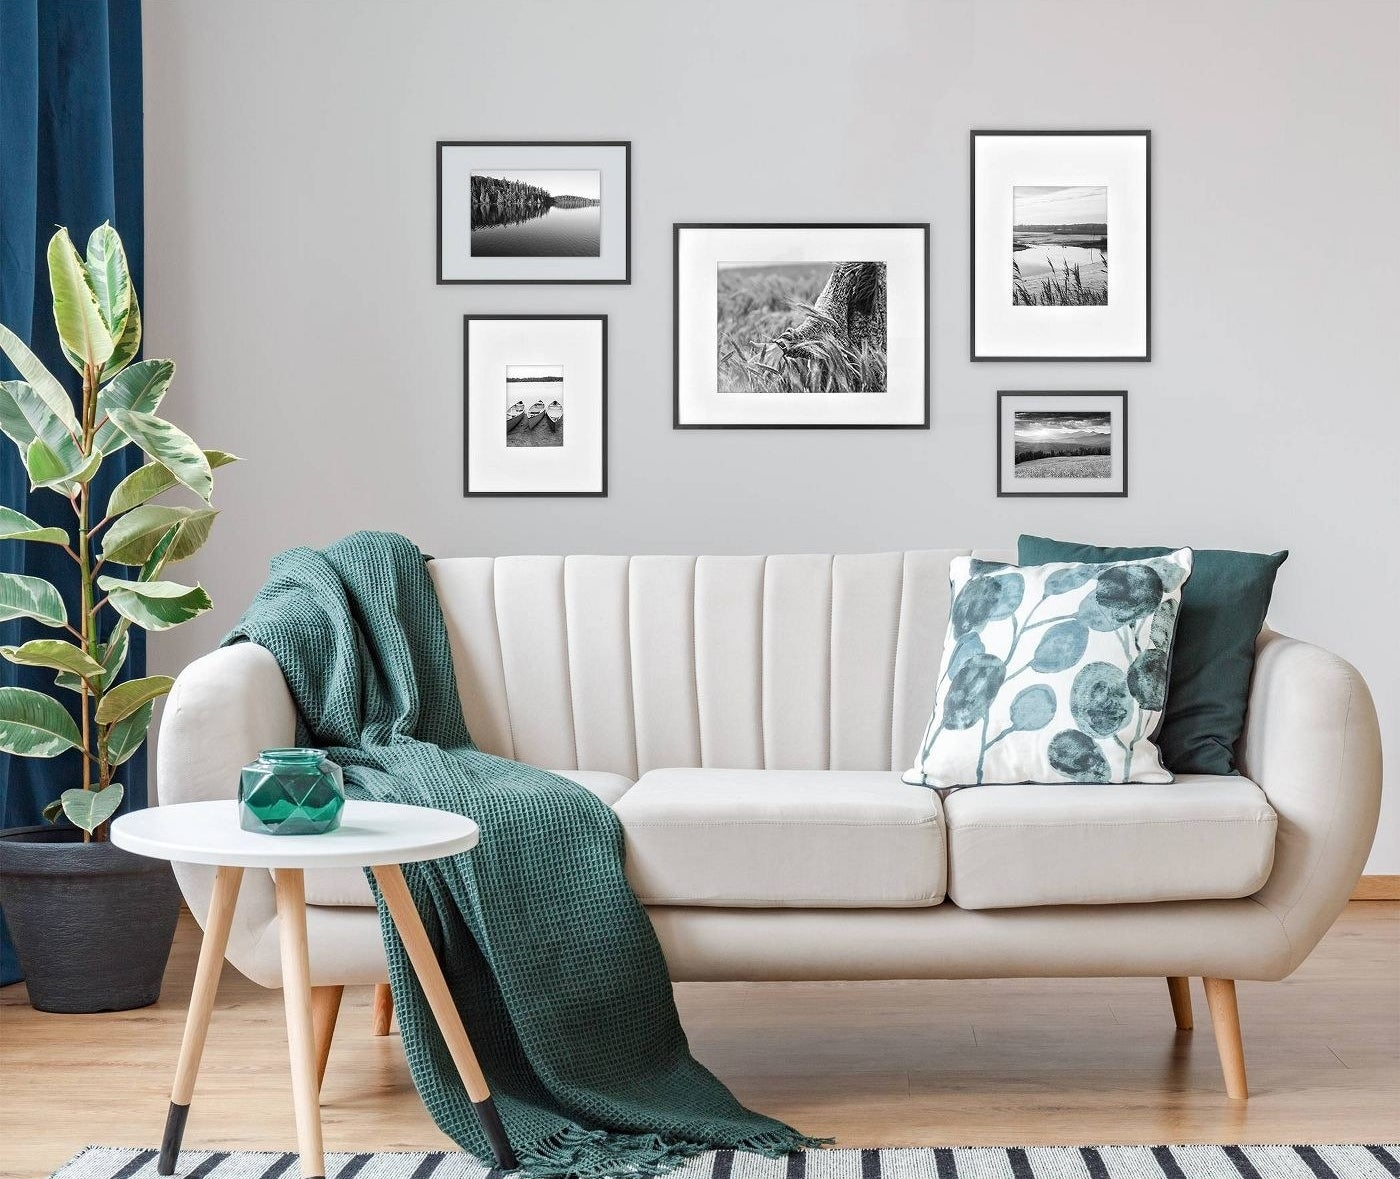 A home with a gallery wall